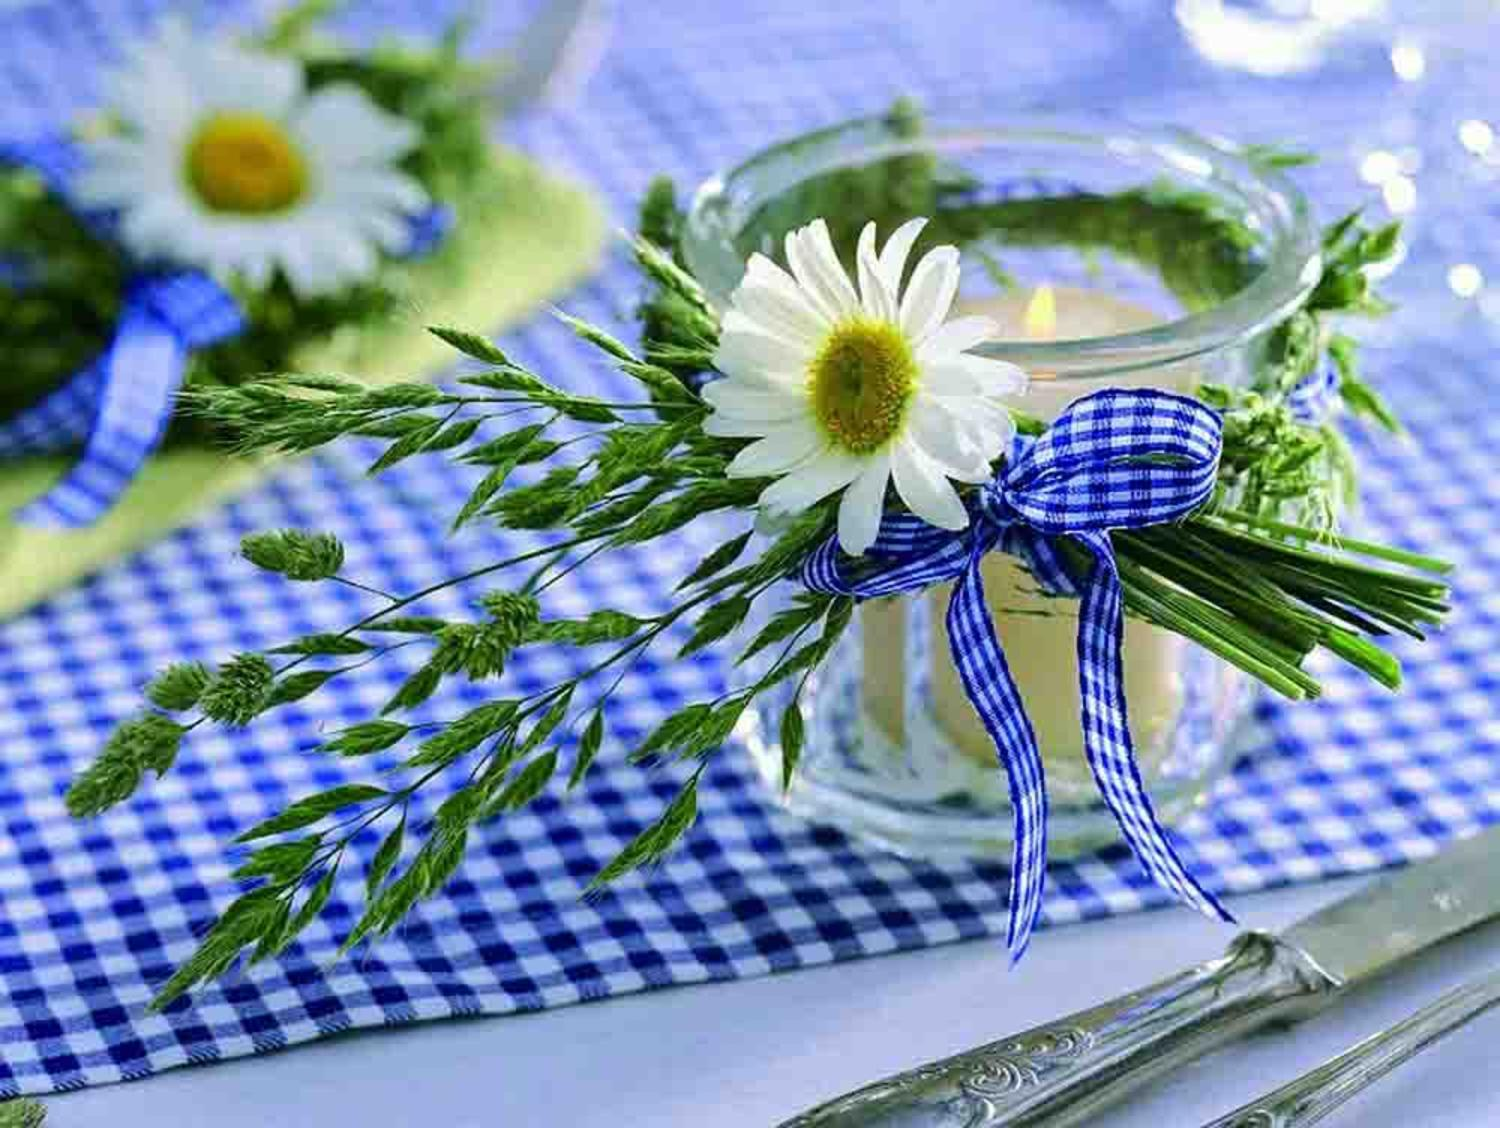 Yellow and white daisy inside of a glass jar with a tealight candle inside on top of a blue and white checkered table cloth.